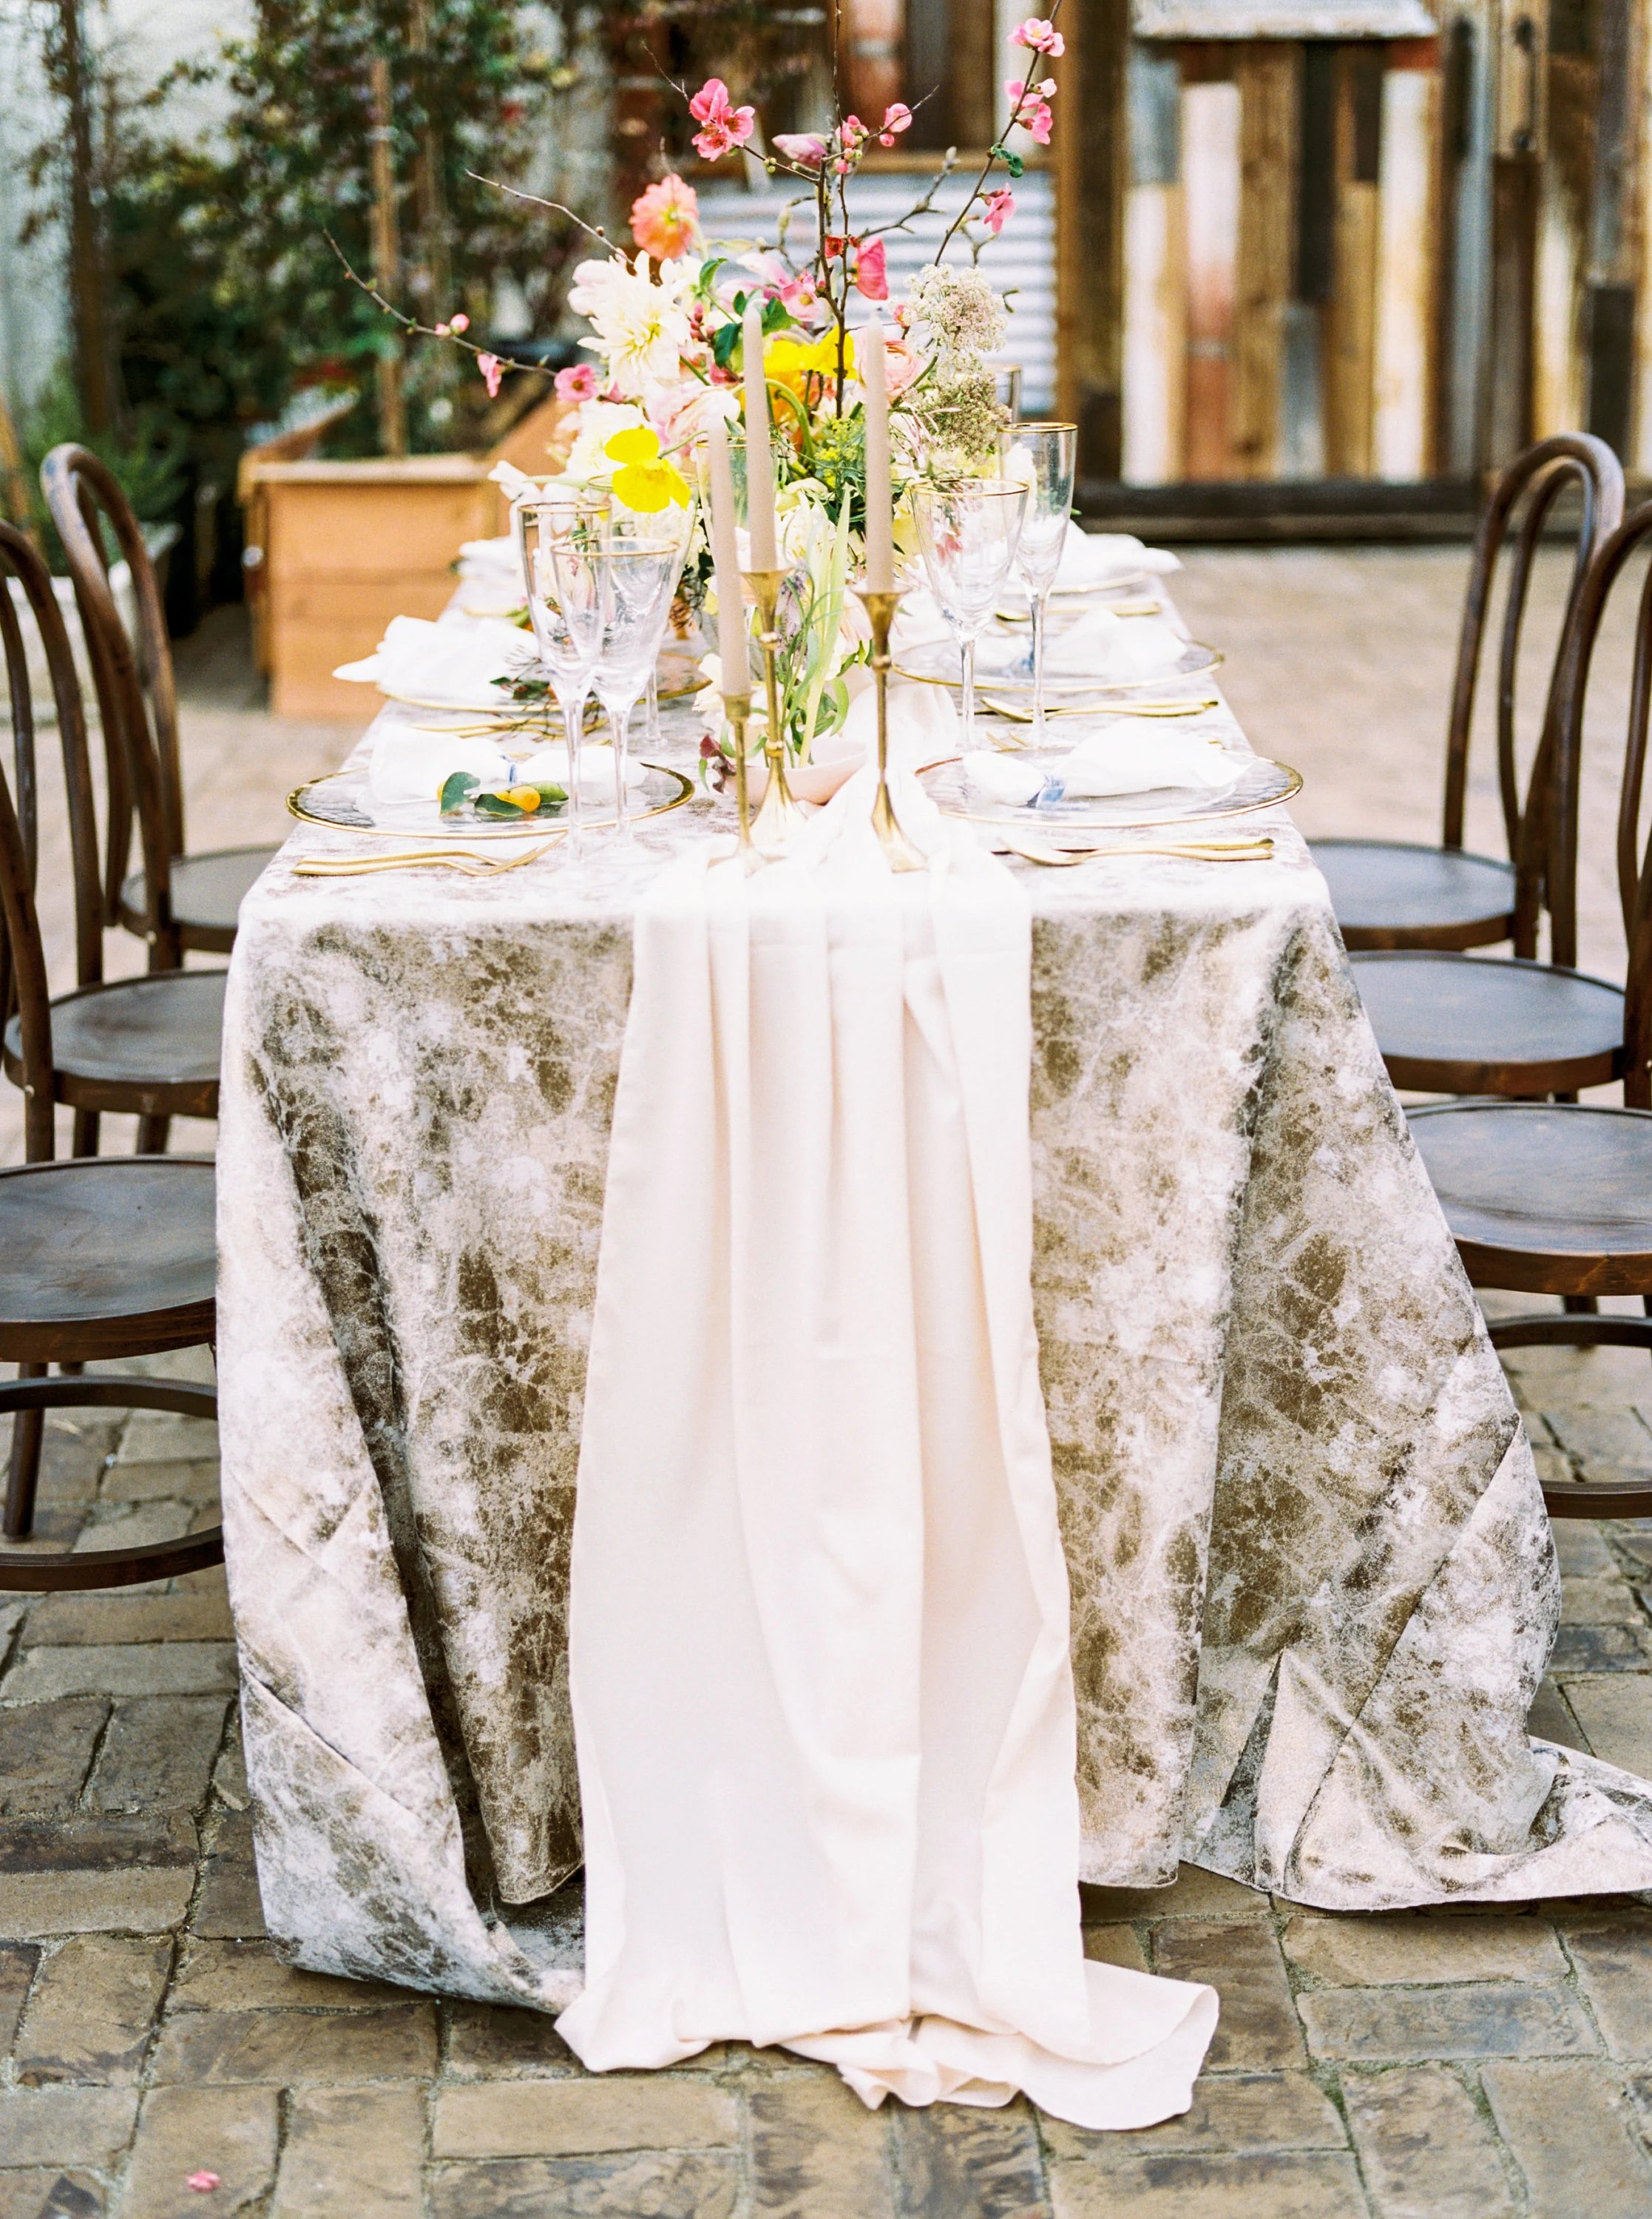 Decoration Nappe De Table Nappe Or Nappe Or Paillette Linge De Table Or Décoration De Mariage Mariage En Marbre D Or Nappe De Mariage Linge De Table De Mariage